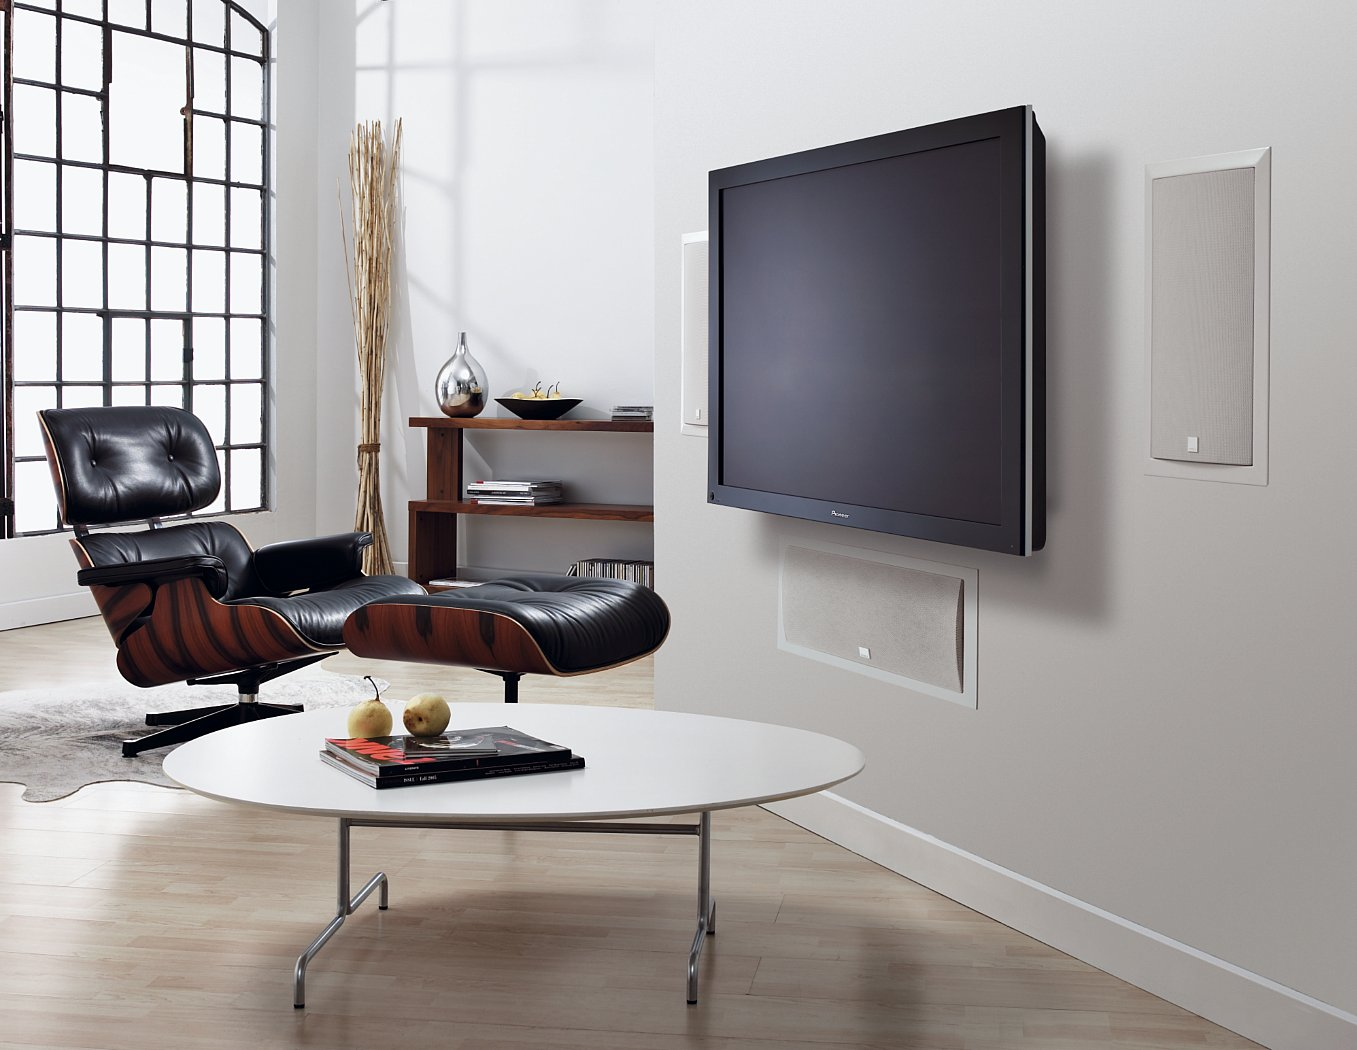 Living stylish room speakers recommendations to wear for autumn in 2019